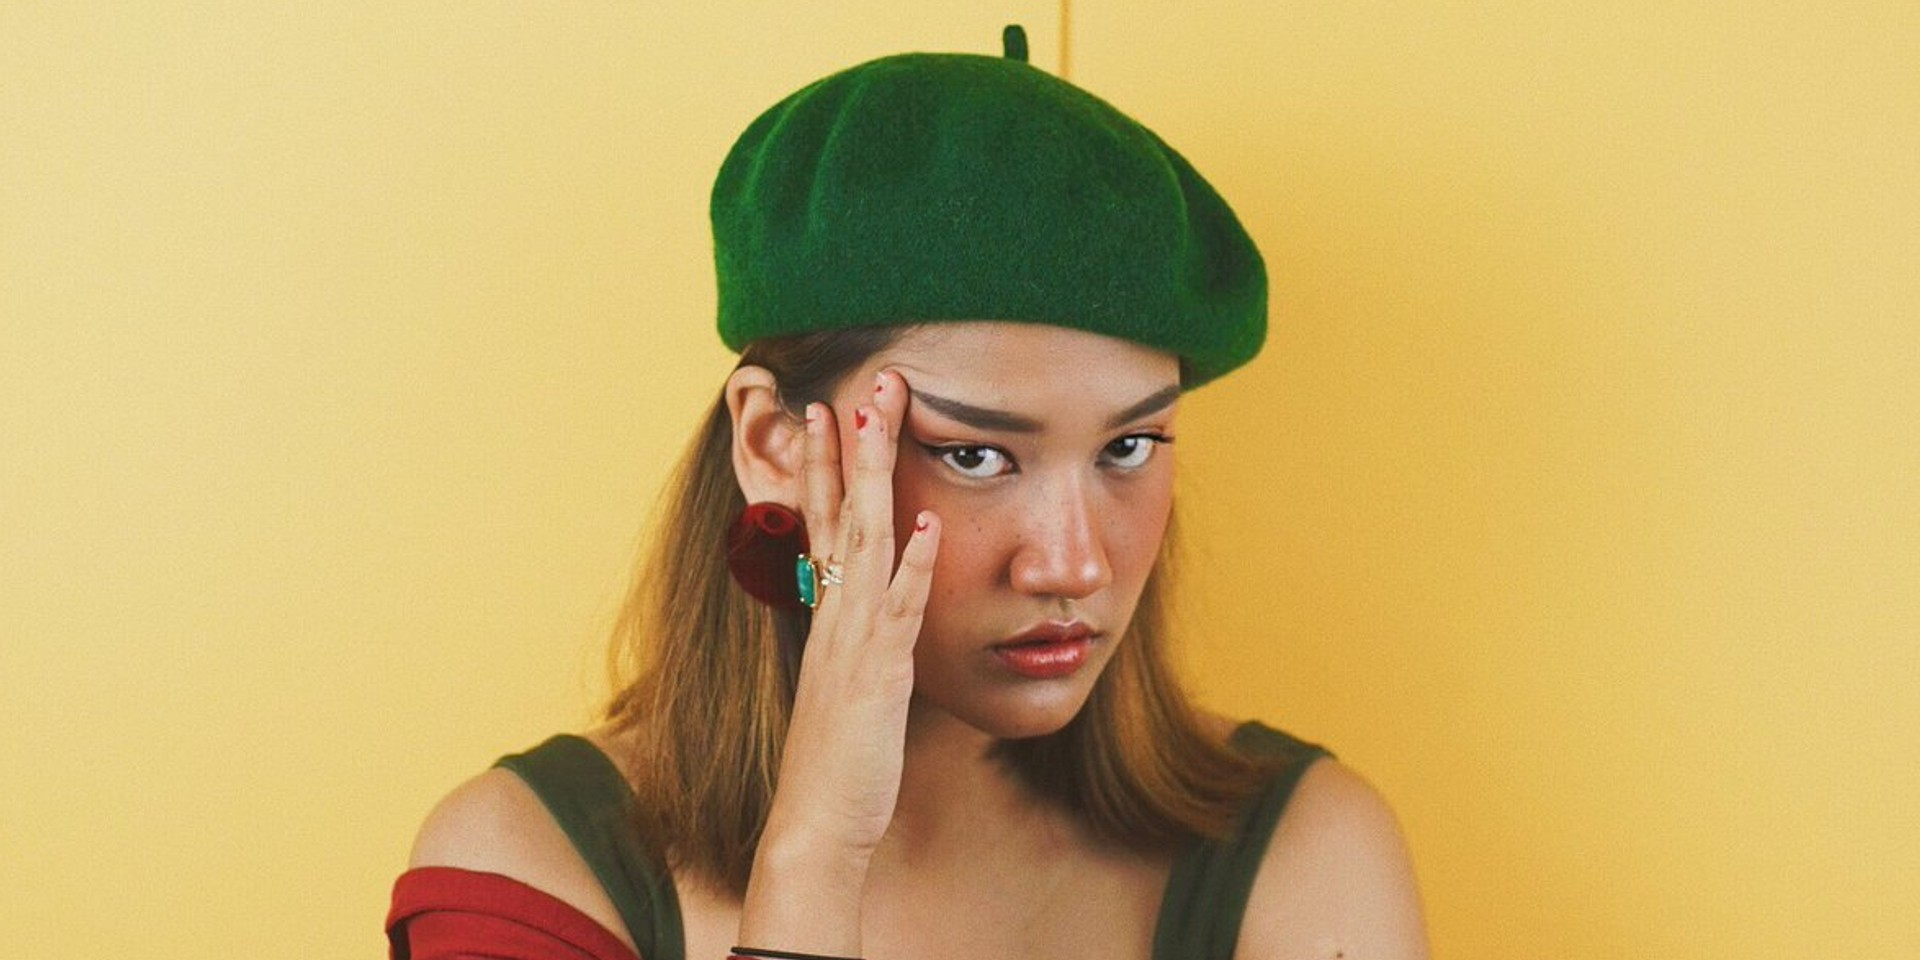 Introducing: Sad, groovy, or both? Malaysian singer-songwriter Lunadira on writing love songs